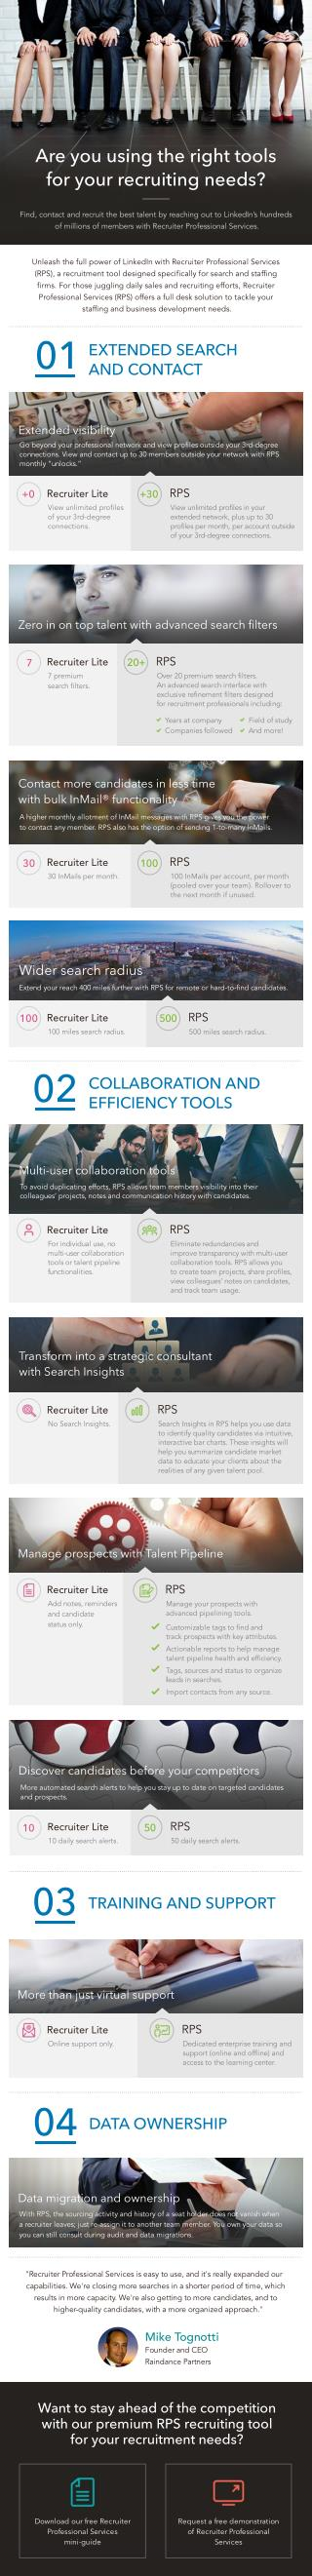 Are you using the right tools for your recruiting needs?